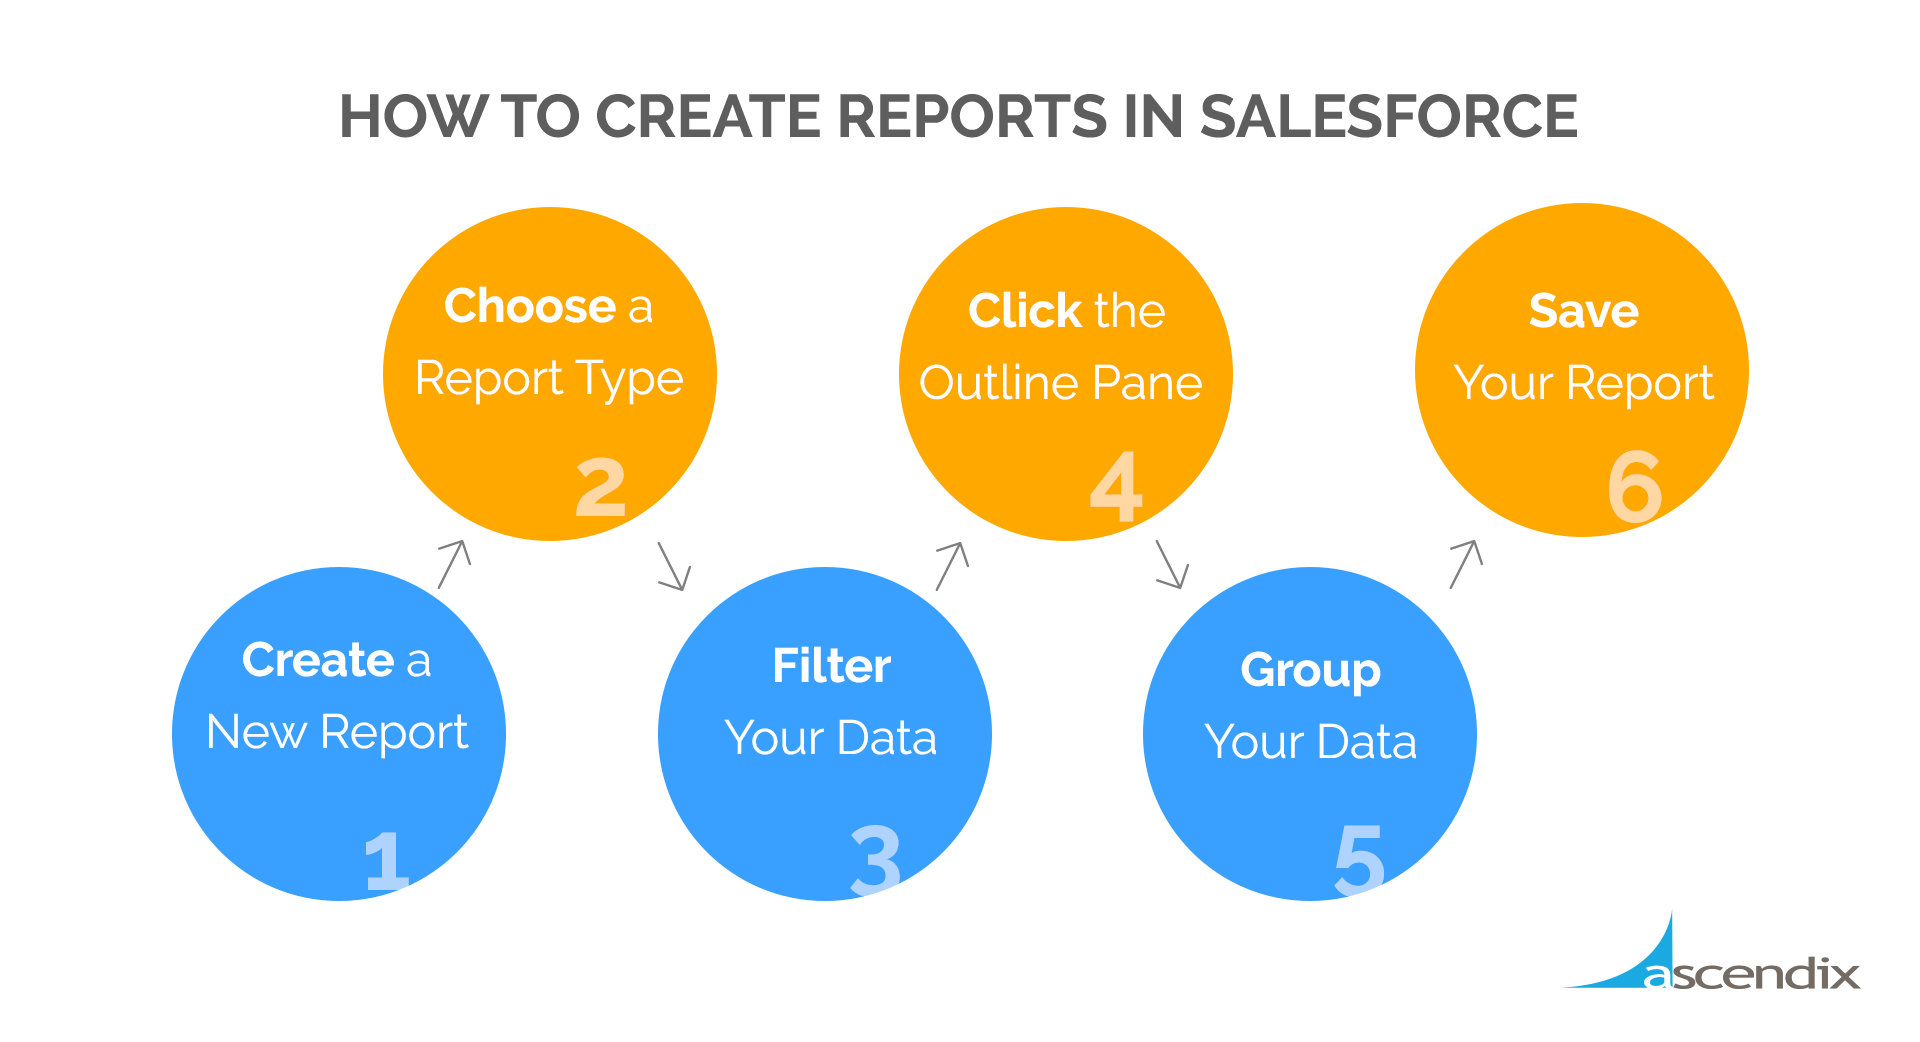 How to create reports in Salesforce